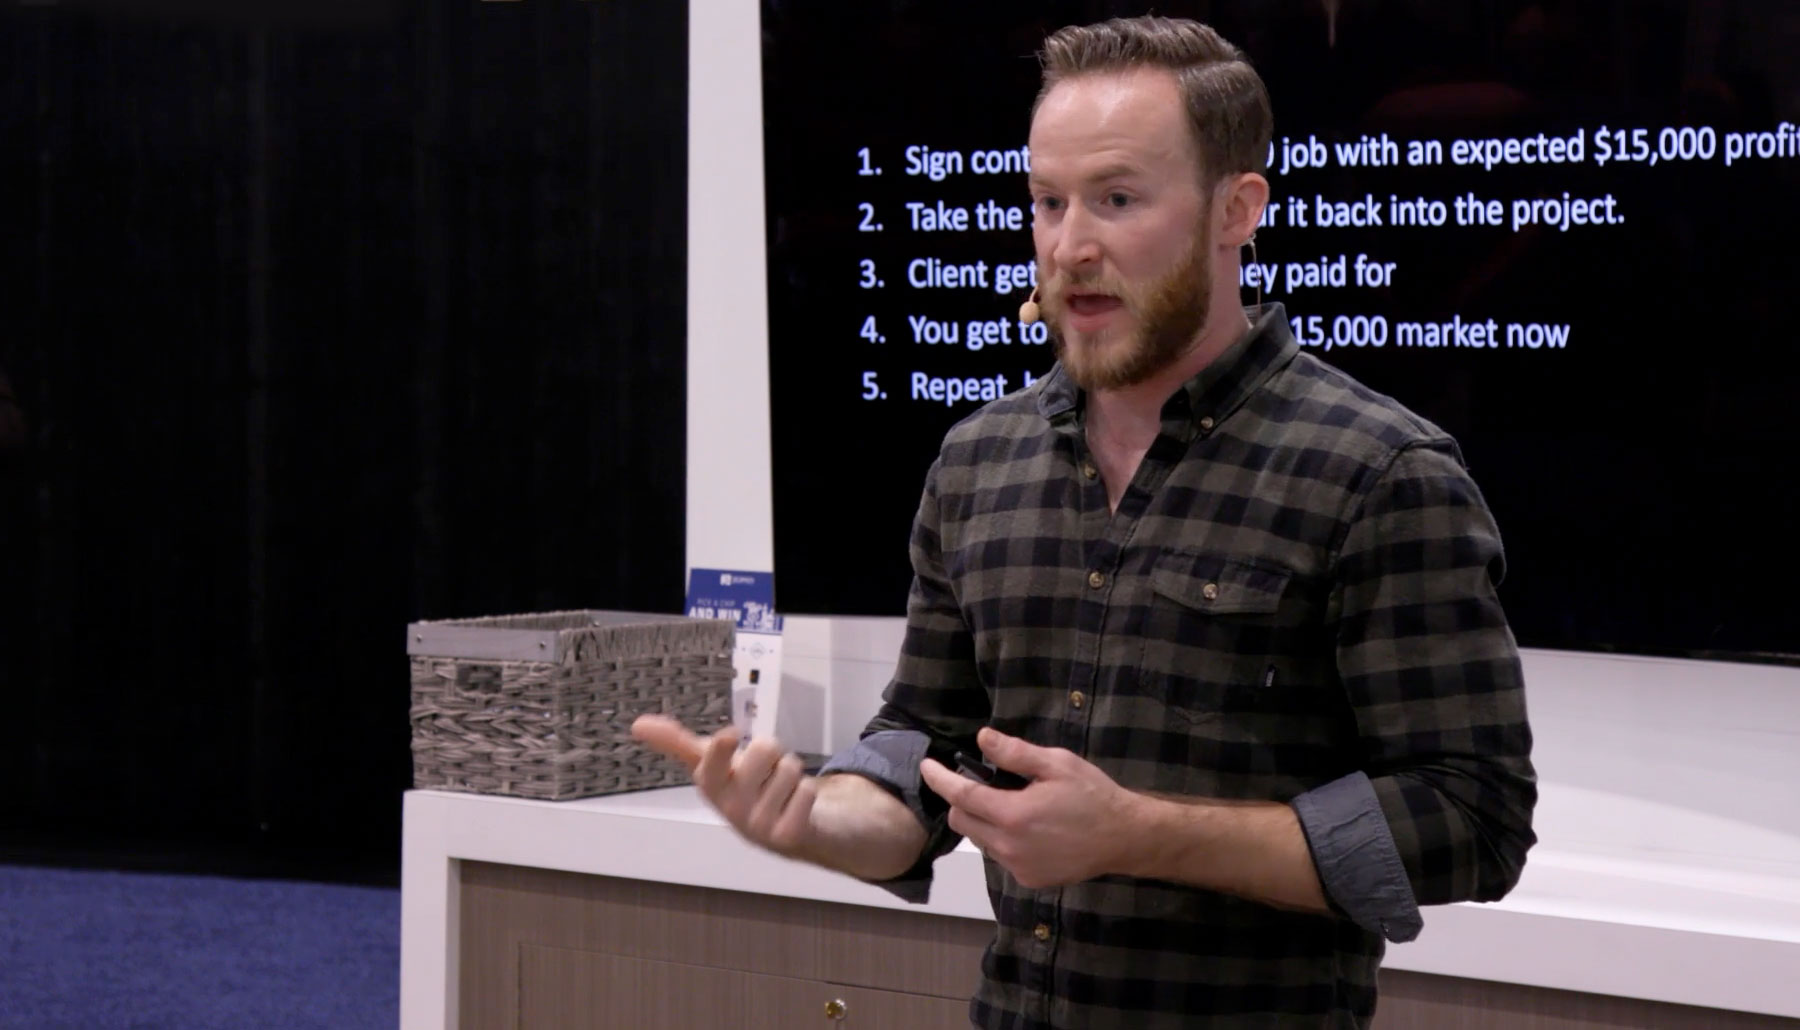 Nick Schiffer Explains How to be the Builder Every Client Wants